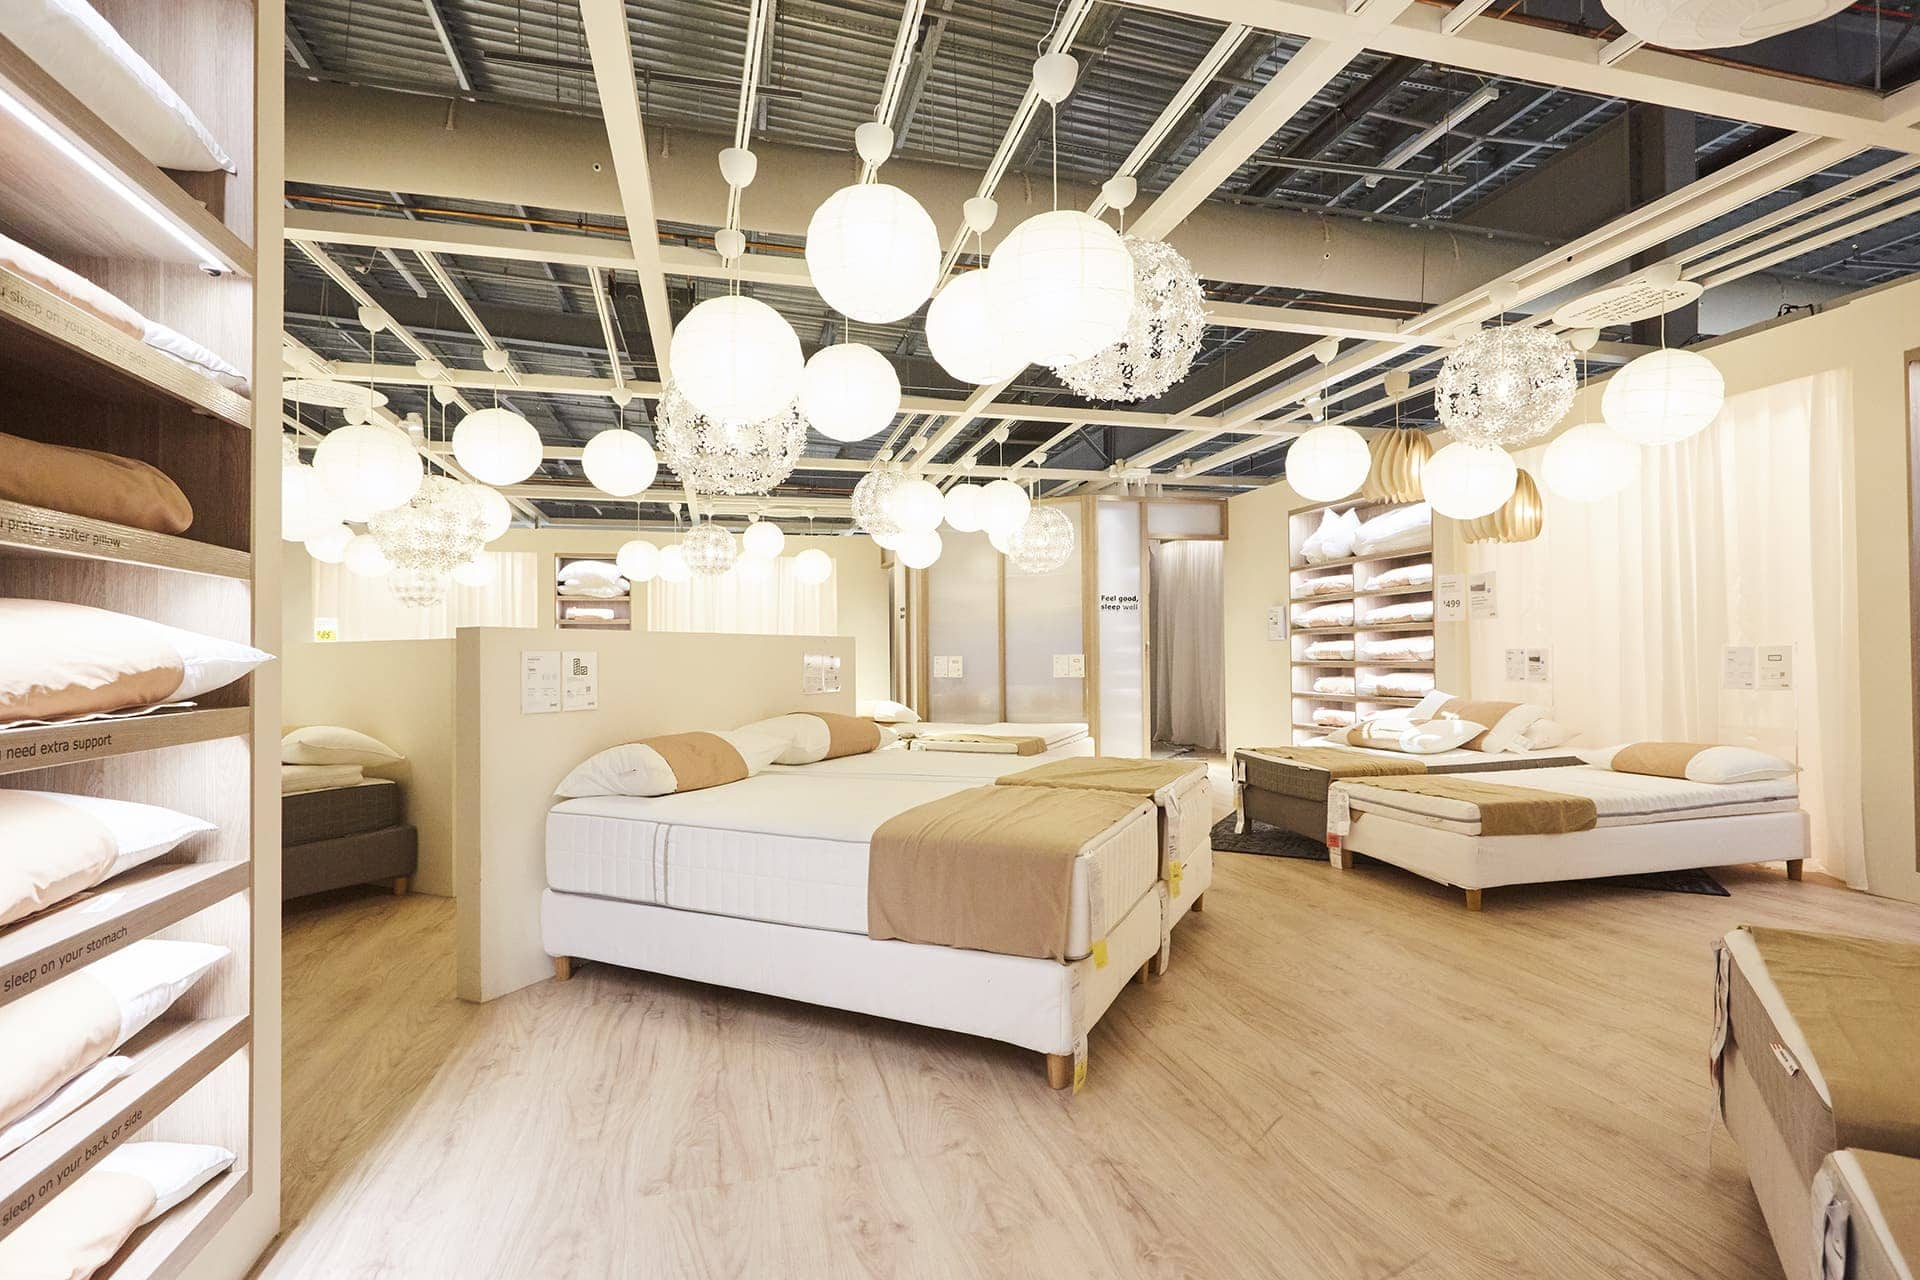 ikea-sleep-studio-ikea-springvale-ikea-mattresses-on-showroom-floor